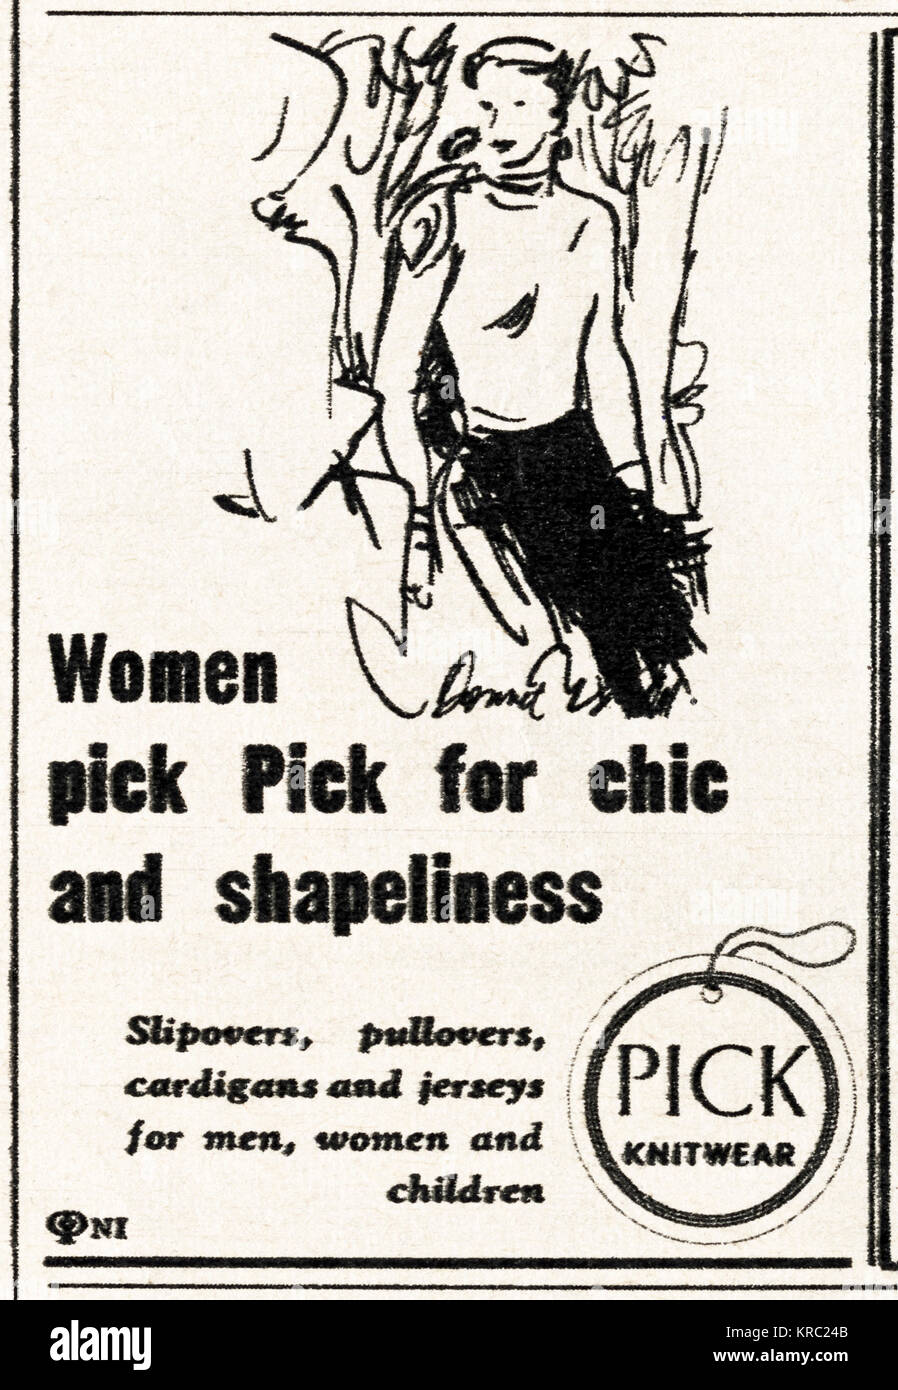 1940s old vintage original advert advertising Pick knitwear for women in magazine circa 1947 when supplies were - Stock Image